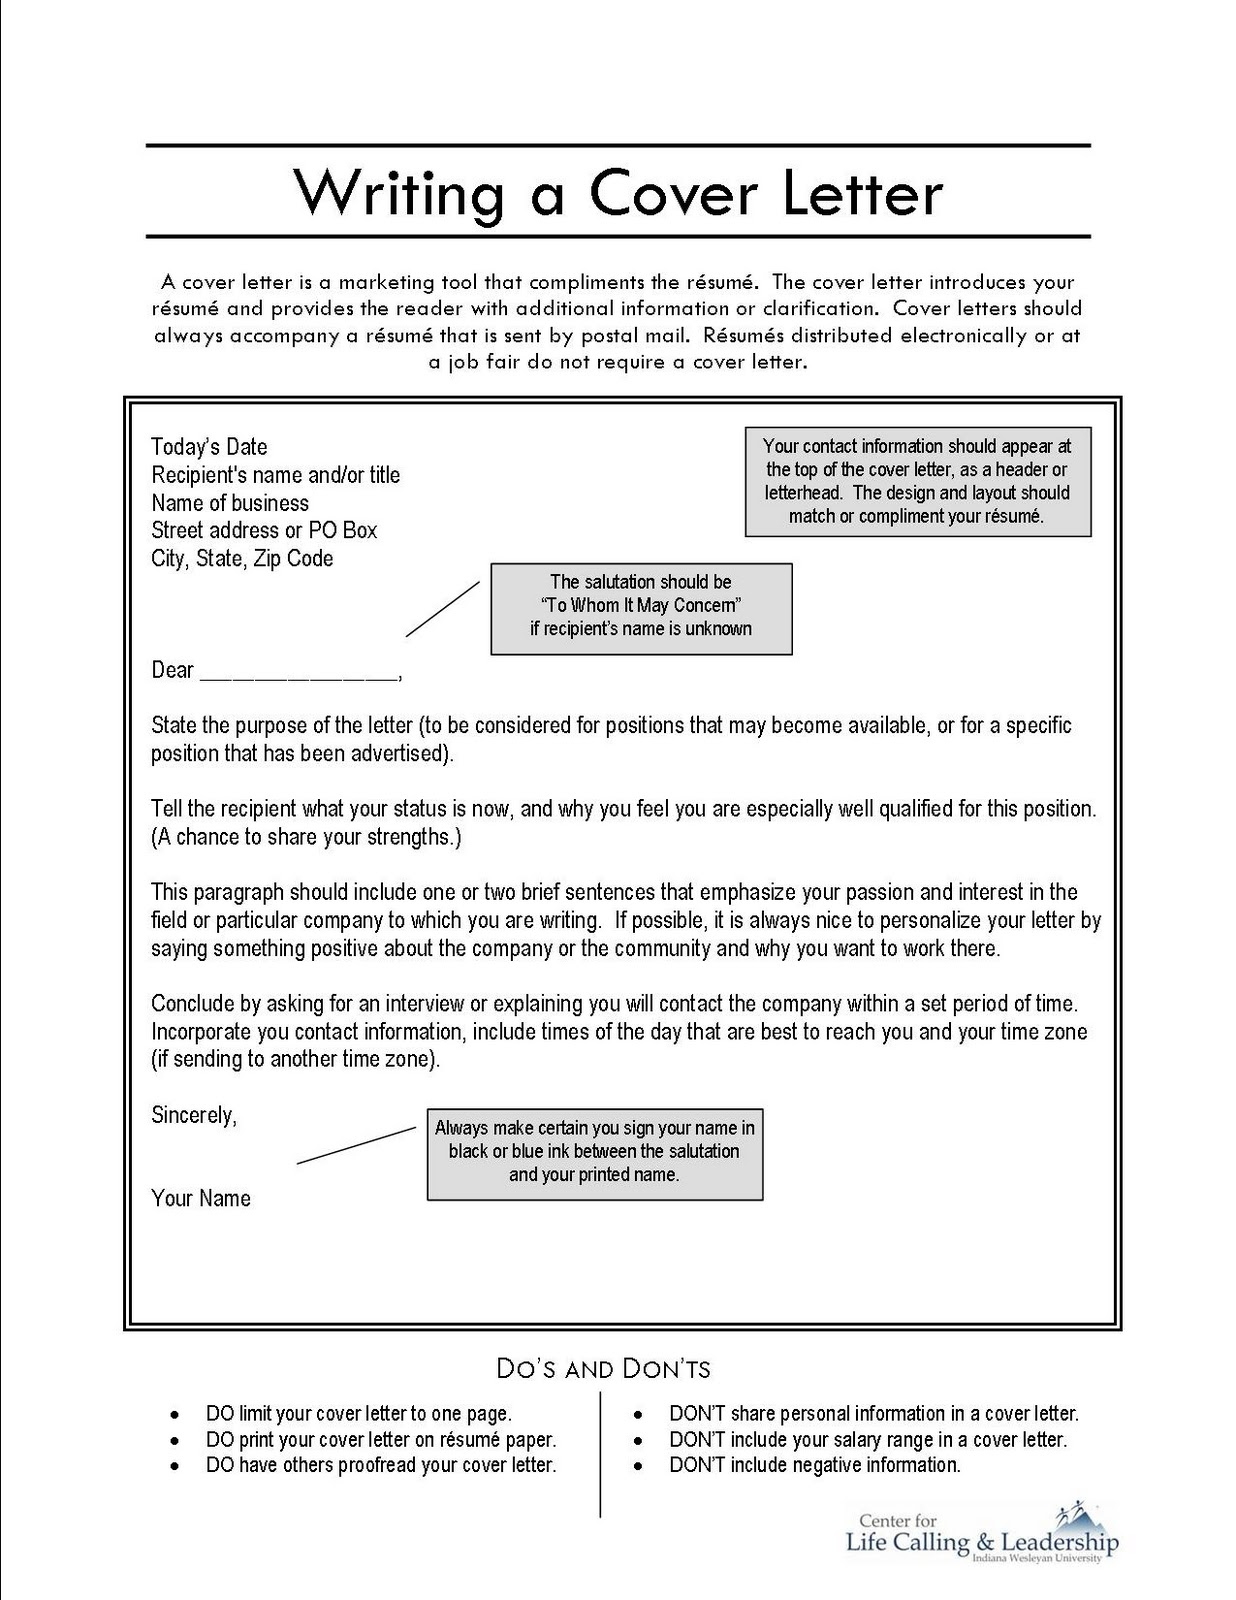 cover letter intros how to write a letter of interest for a job